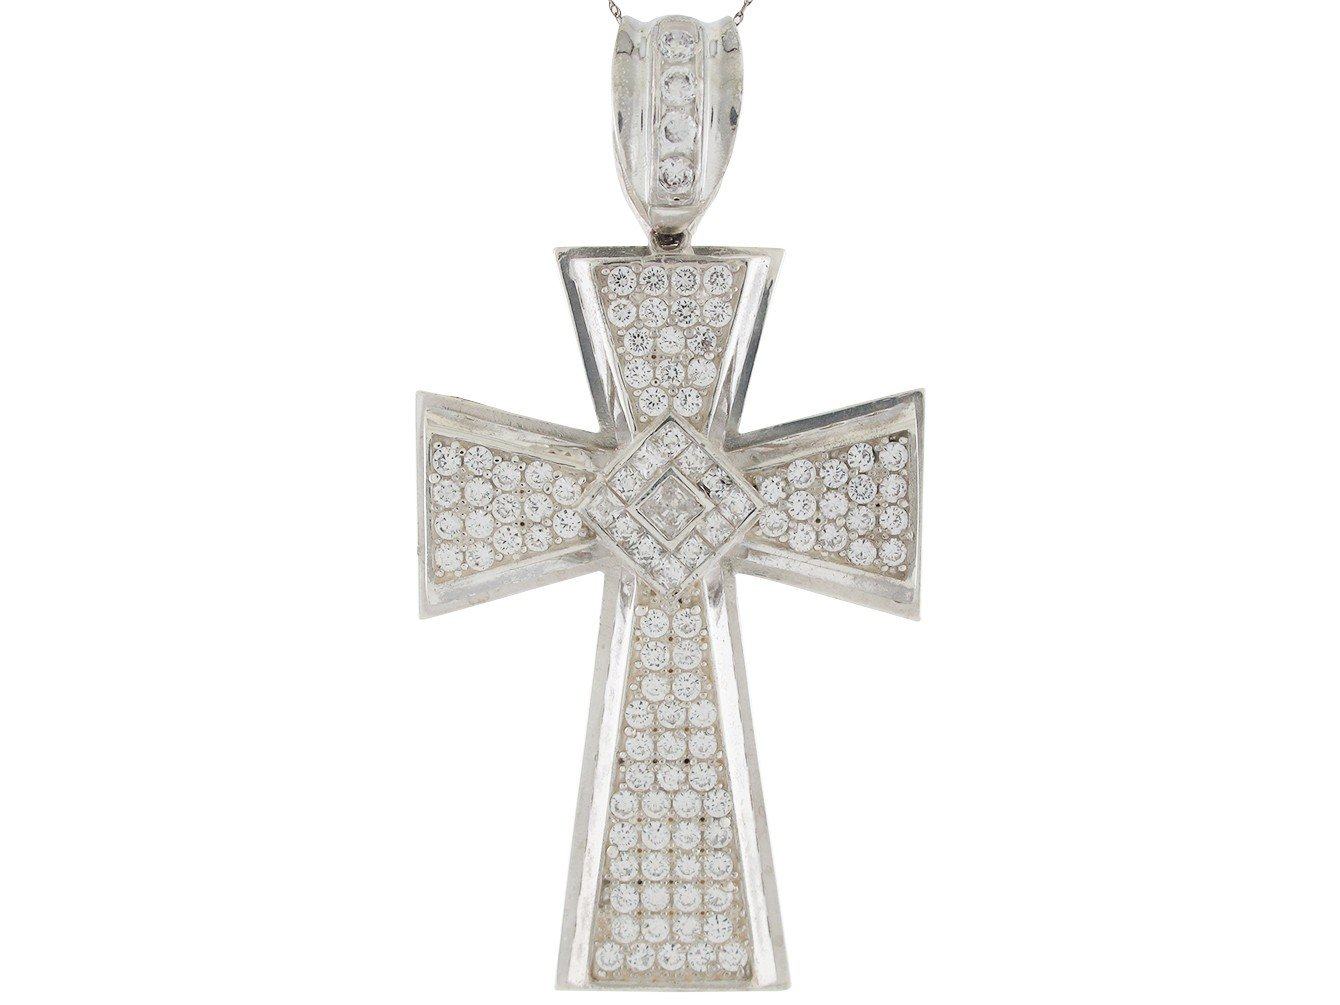 Shimmering White CZ Accented Fancy Huge Pattee Cross Pendant 14k White Gold